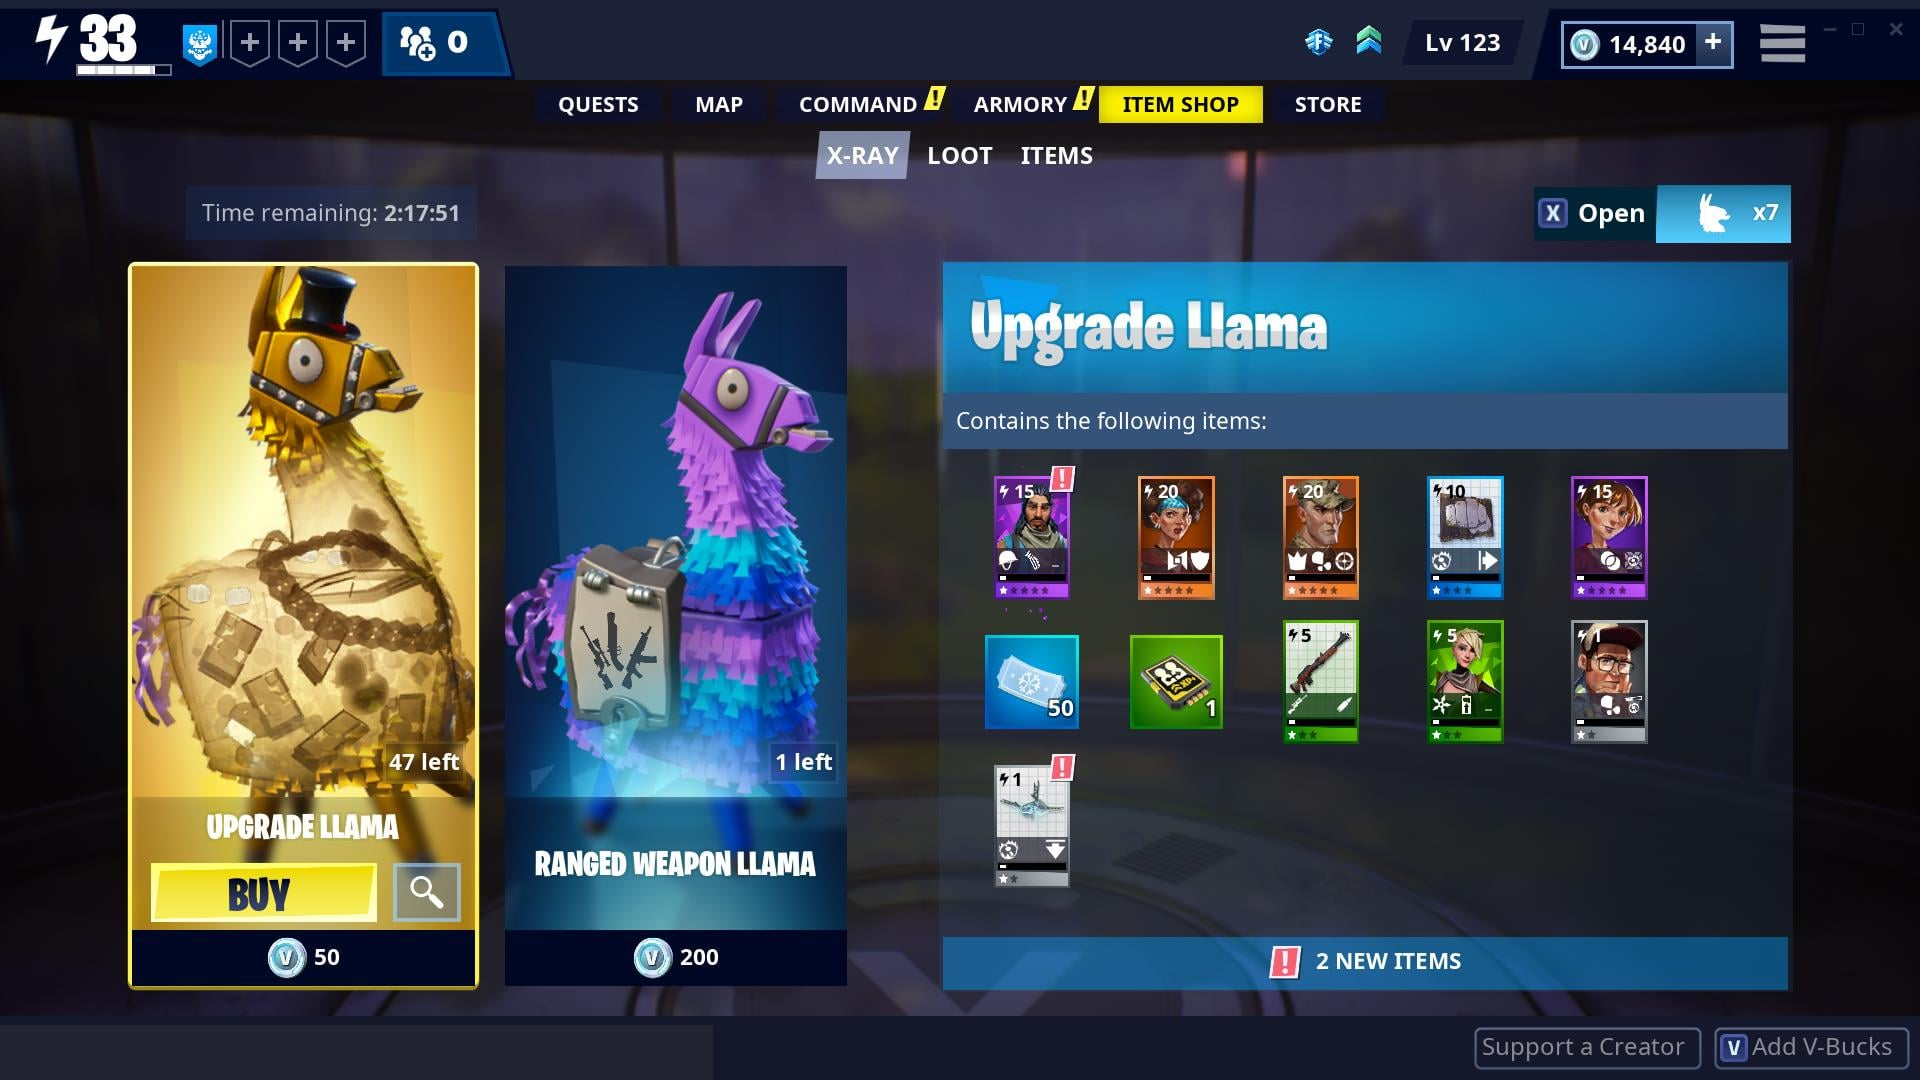 How to get more refunds on fortnite ps4